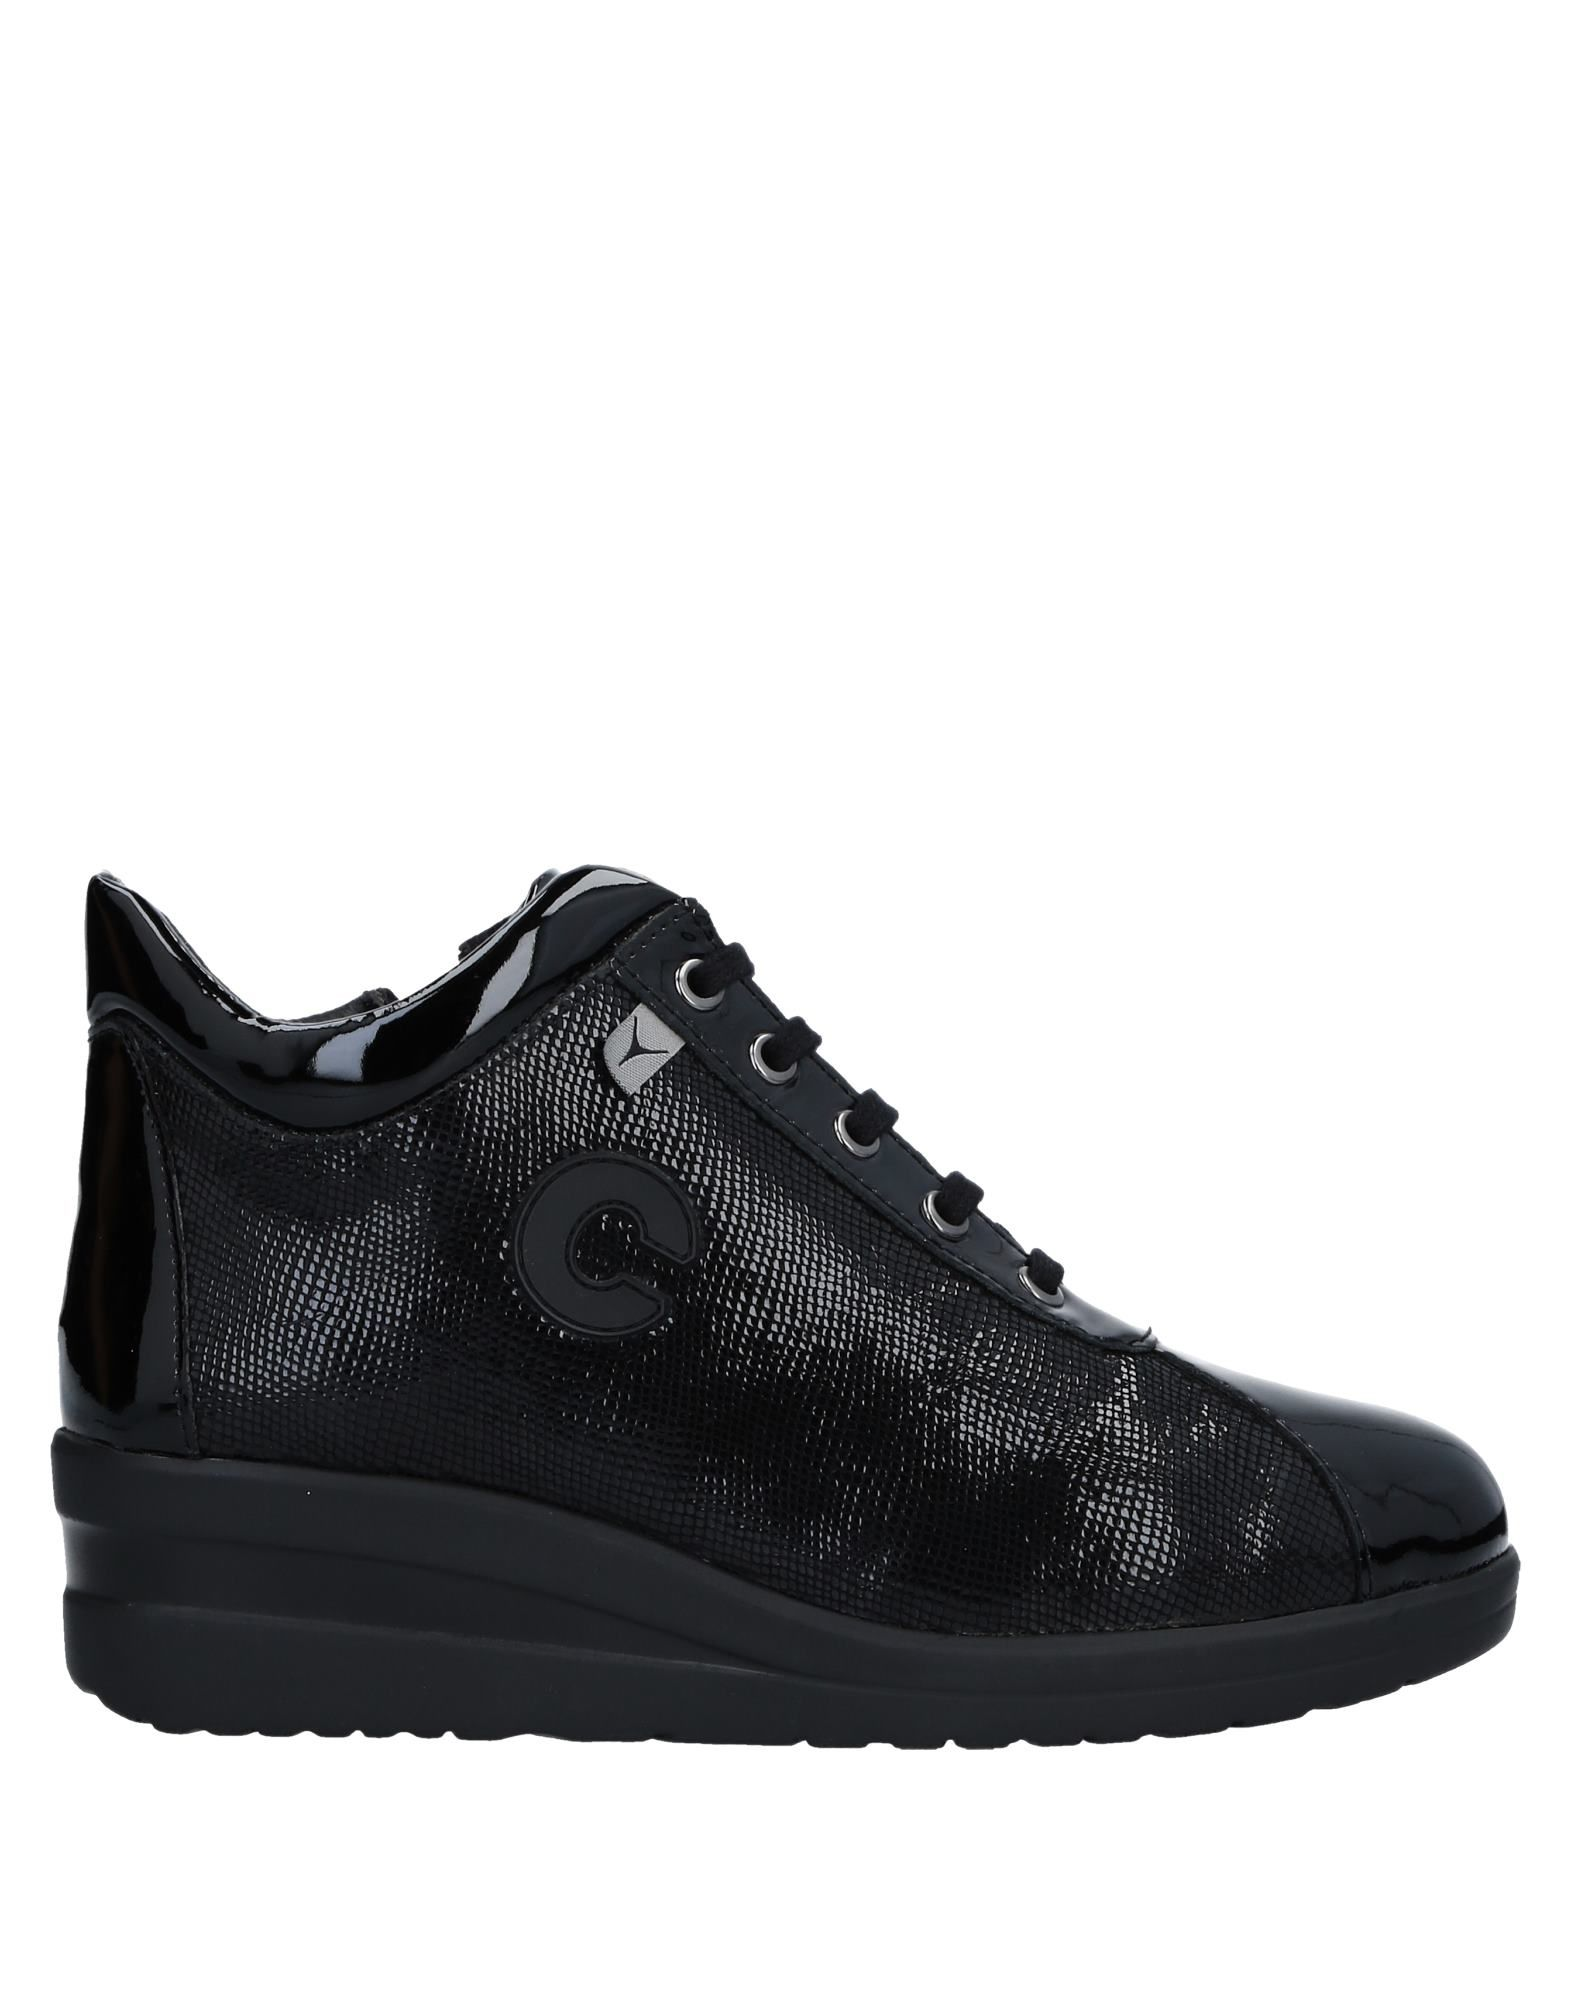 Baskets Cinzia Soft By Mauri Moda Femme - Baskets Cinzia Soft By Mauri Moda Noir Nouvelles chaussures pour hommes et femmes, remise limitée dans le temps